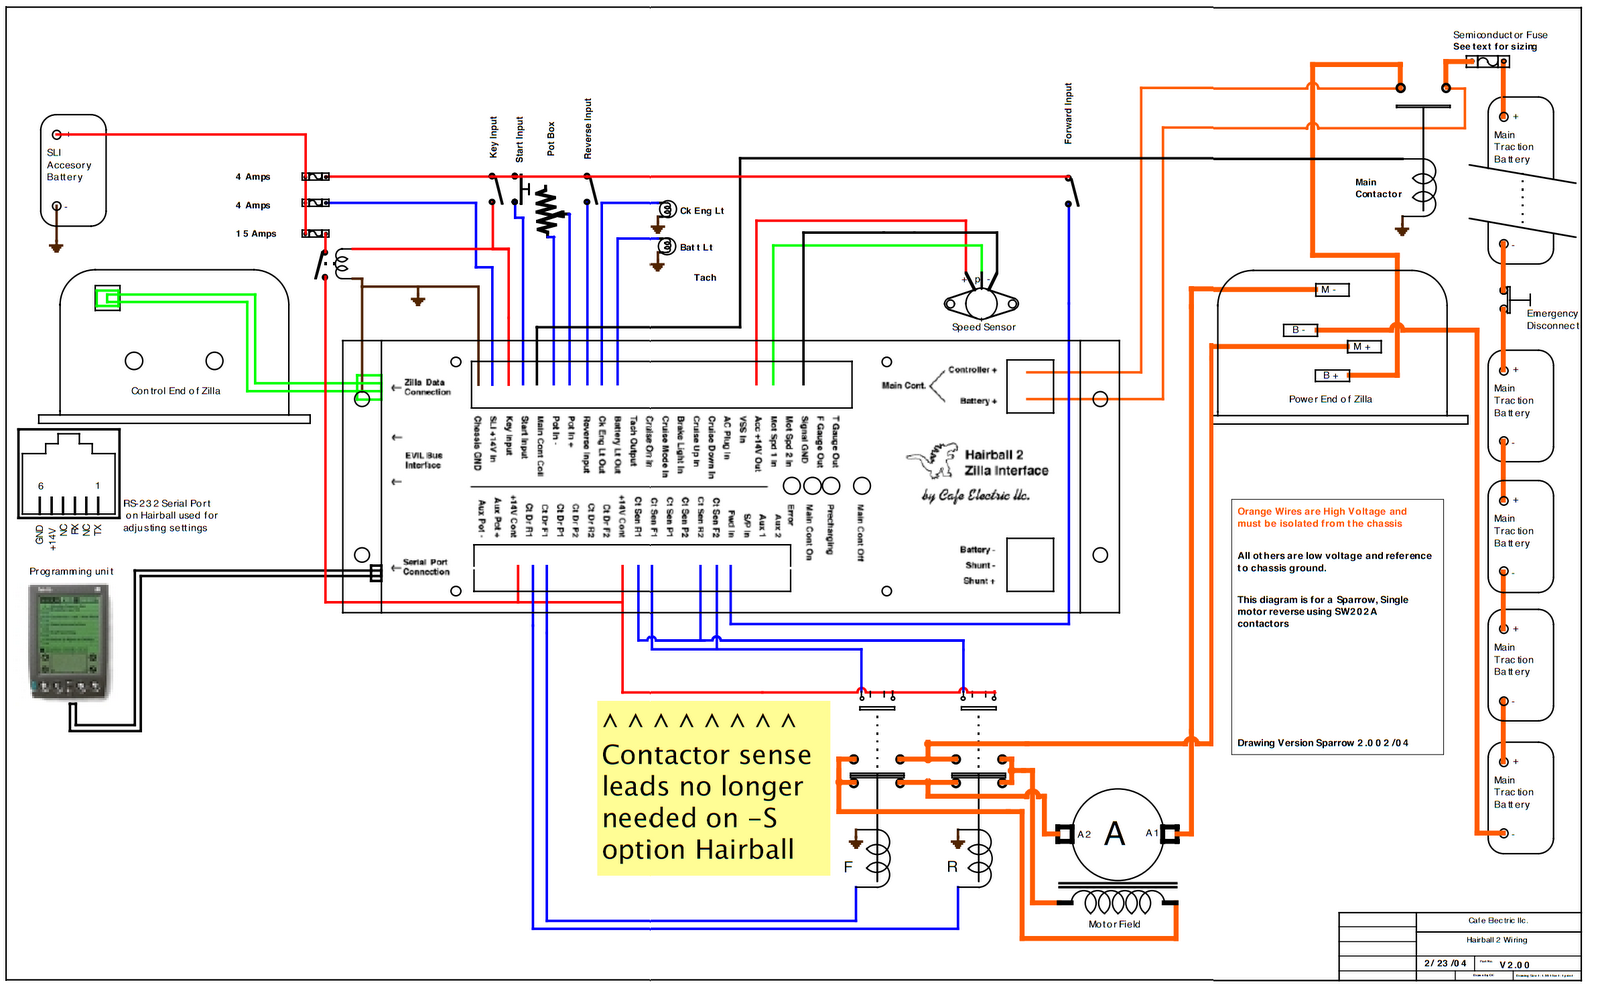 Wiring Diagram For Electric Scooters Artesanato De Papel Para Criancas Artesanato Em Papel